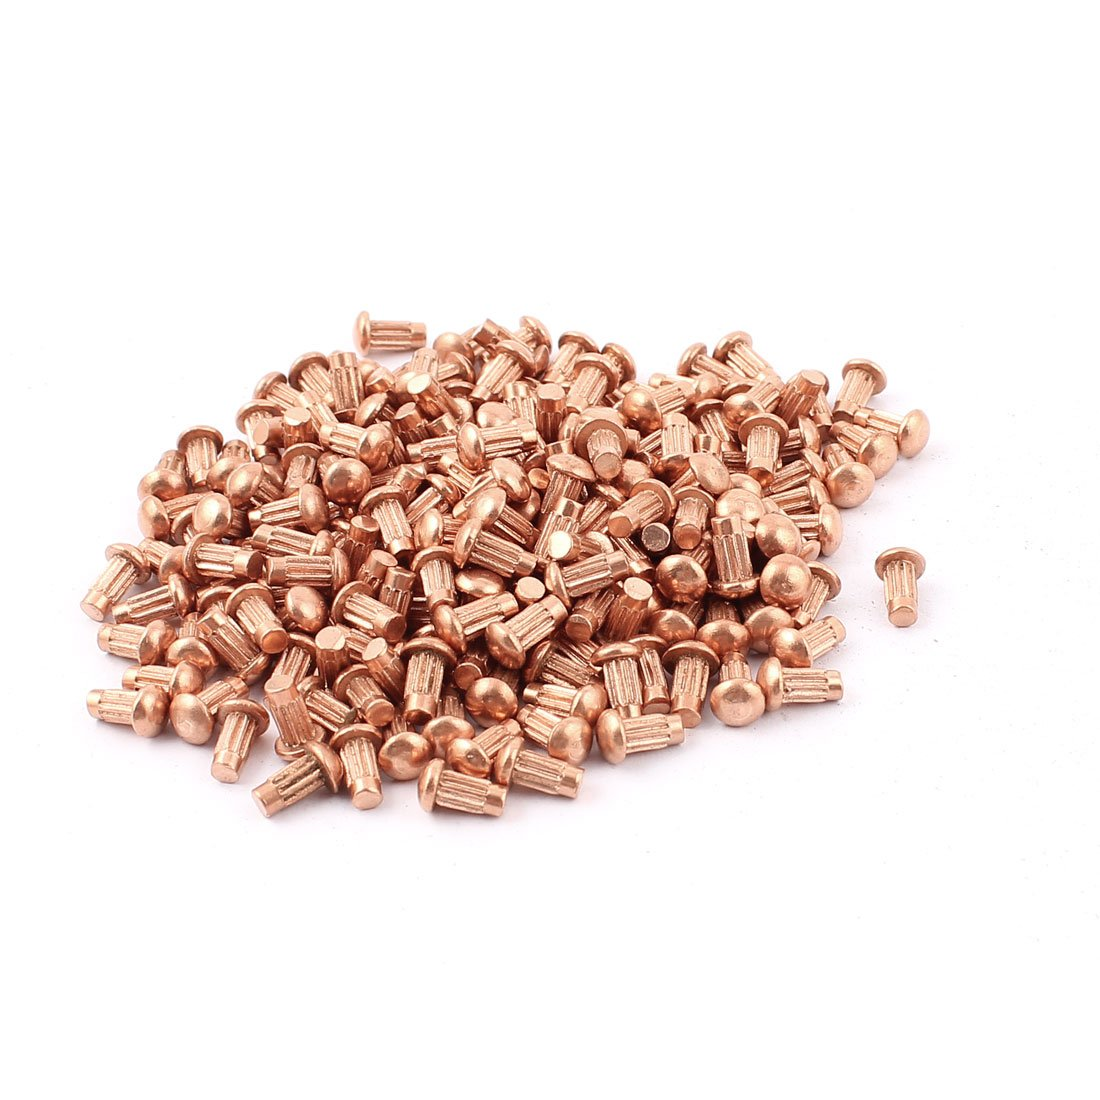 200 Pcs 1/8'' x 1/4'' Copper Round Head Solid Rivets Knurled Shanks